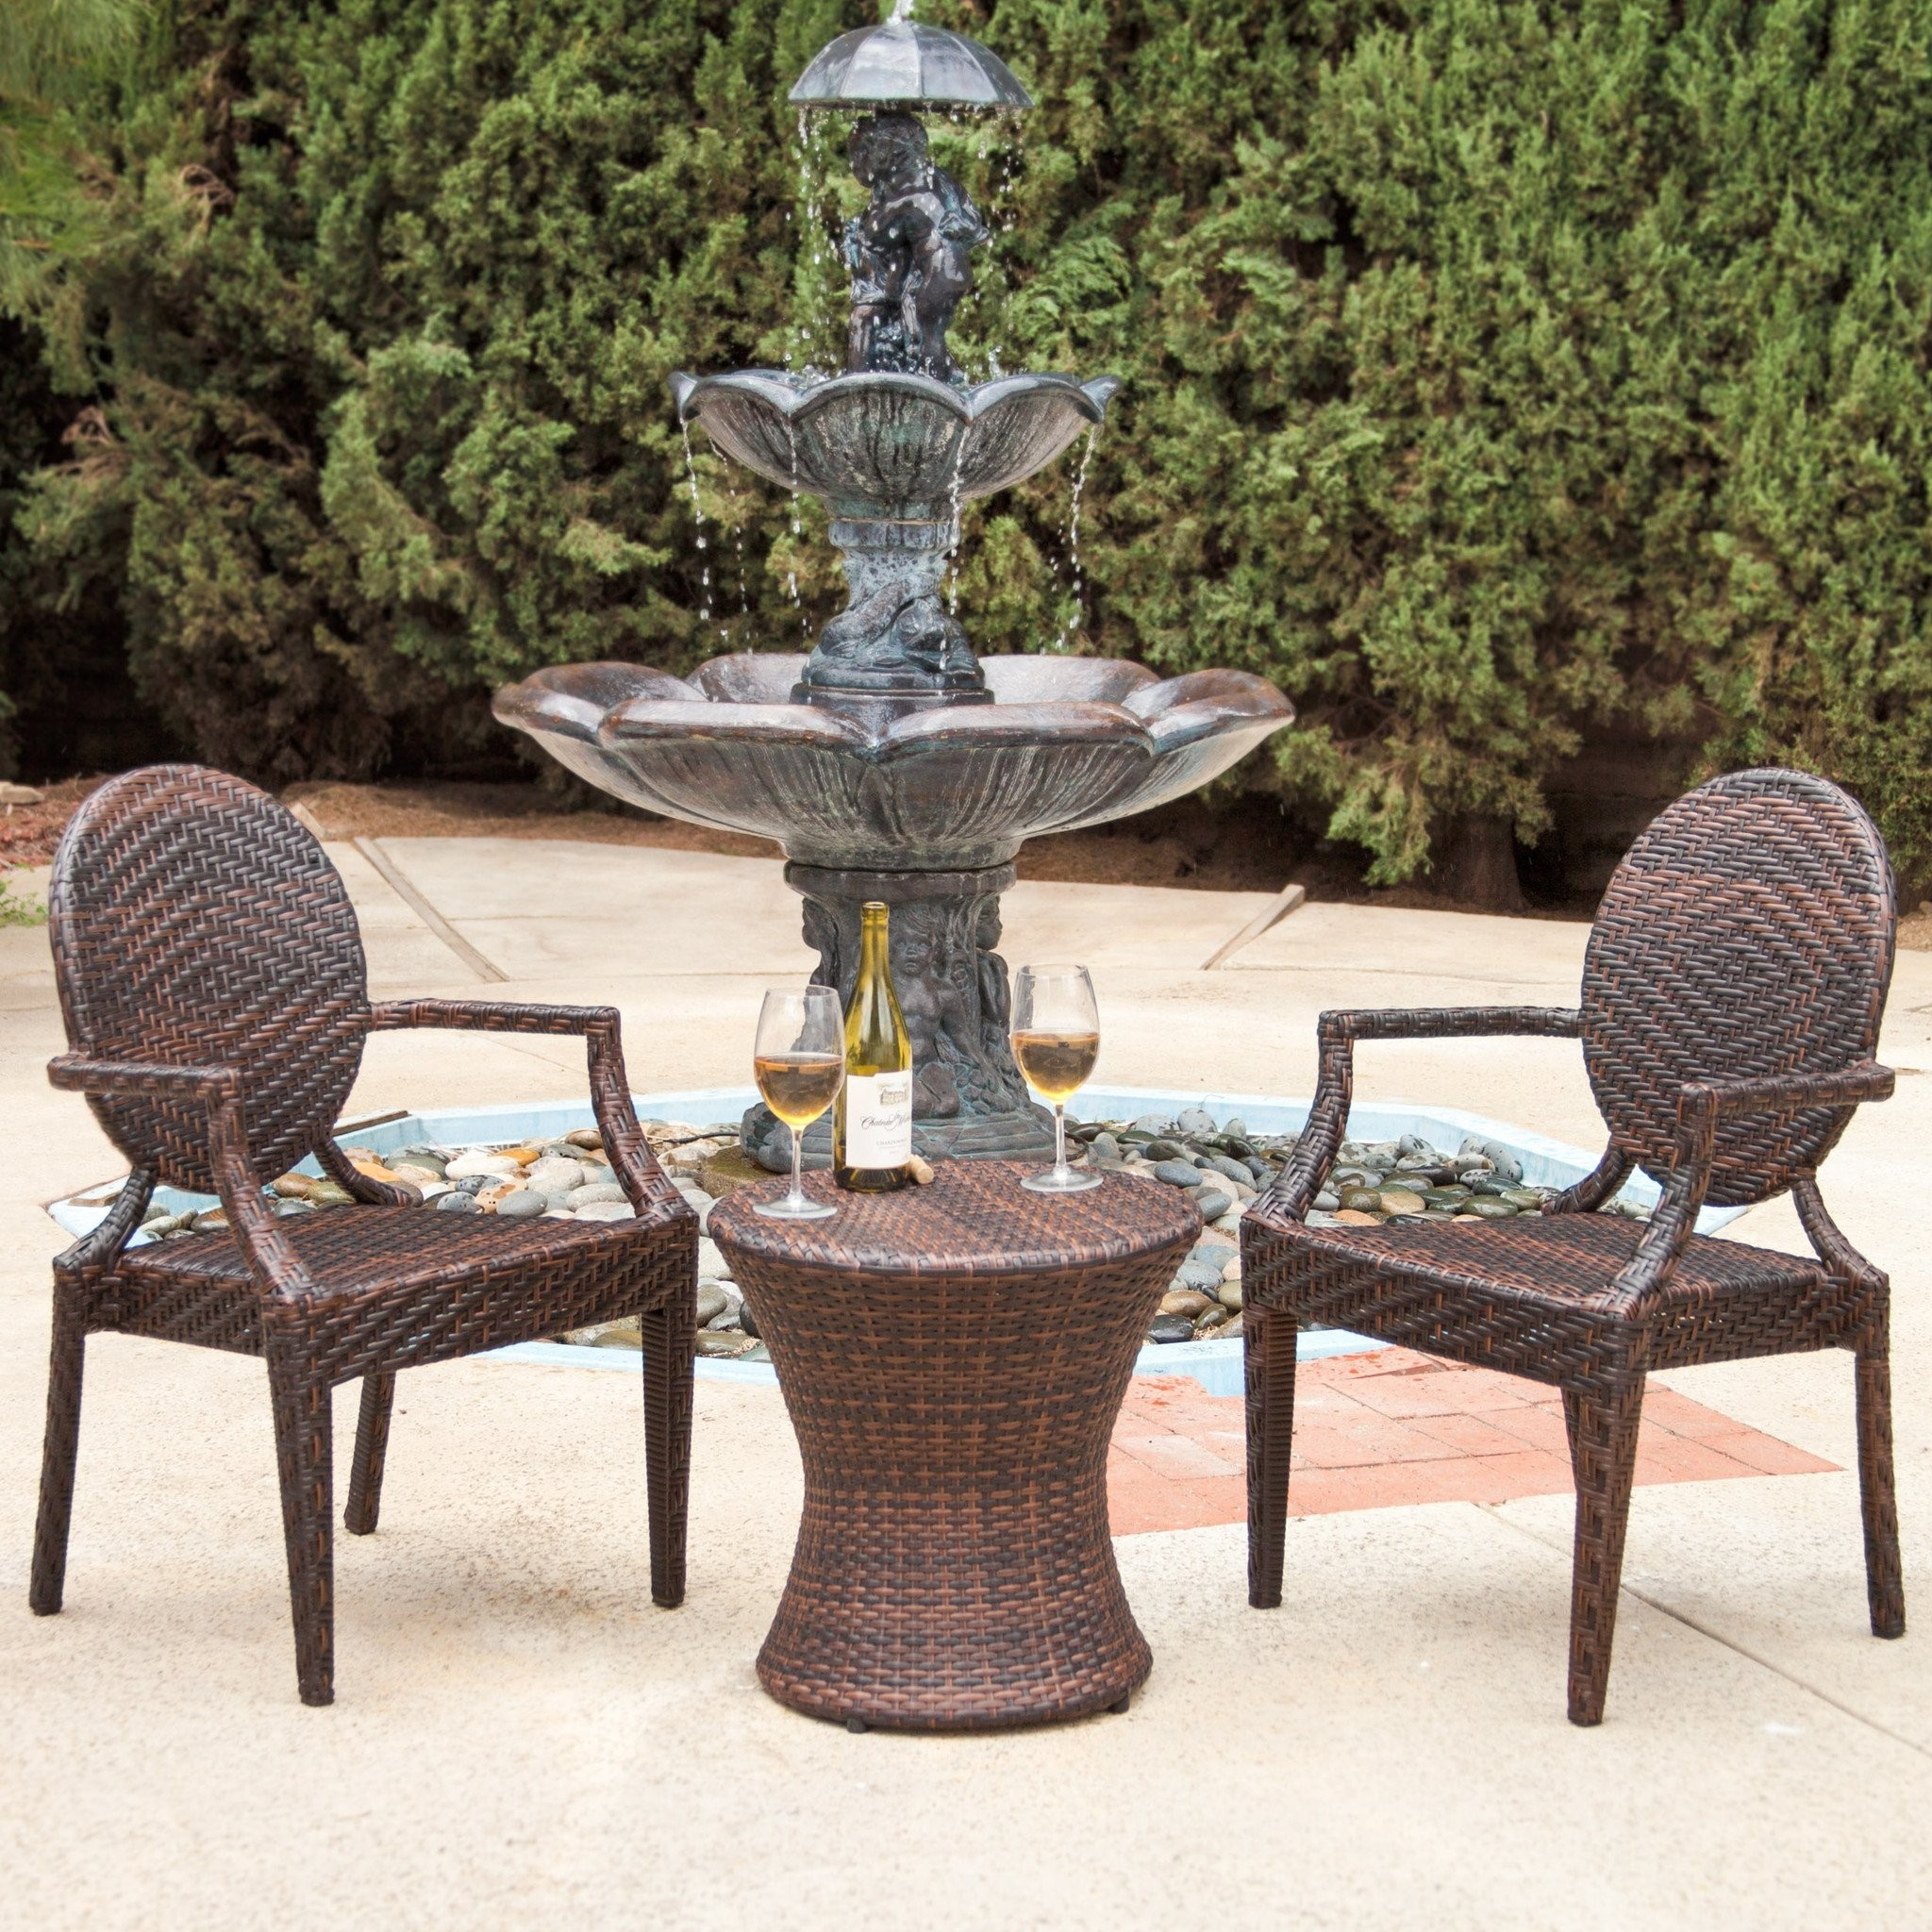 Townsgate Outdoor 3pc Brown Wicker Chat Set